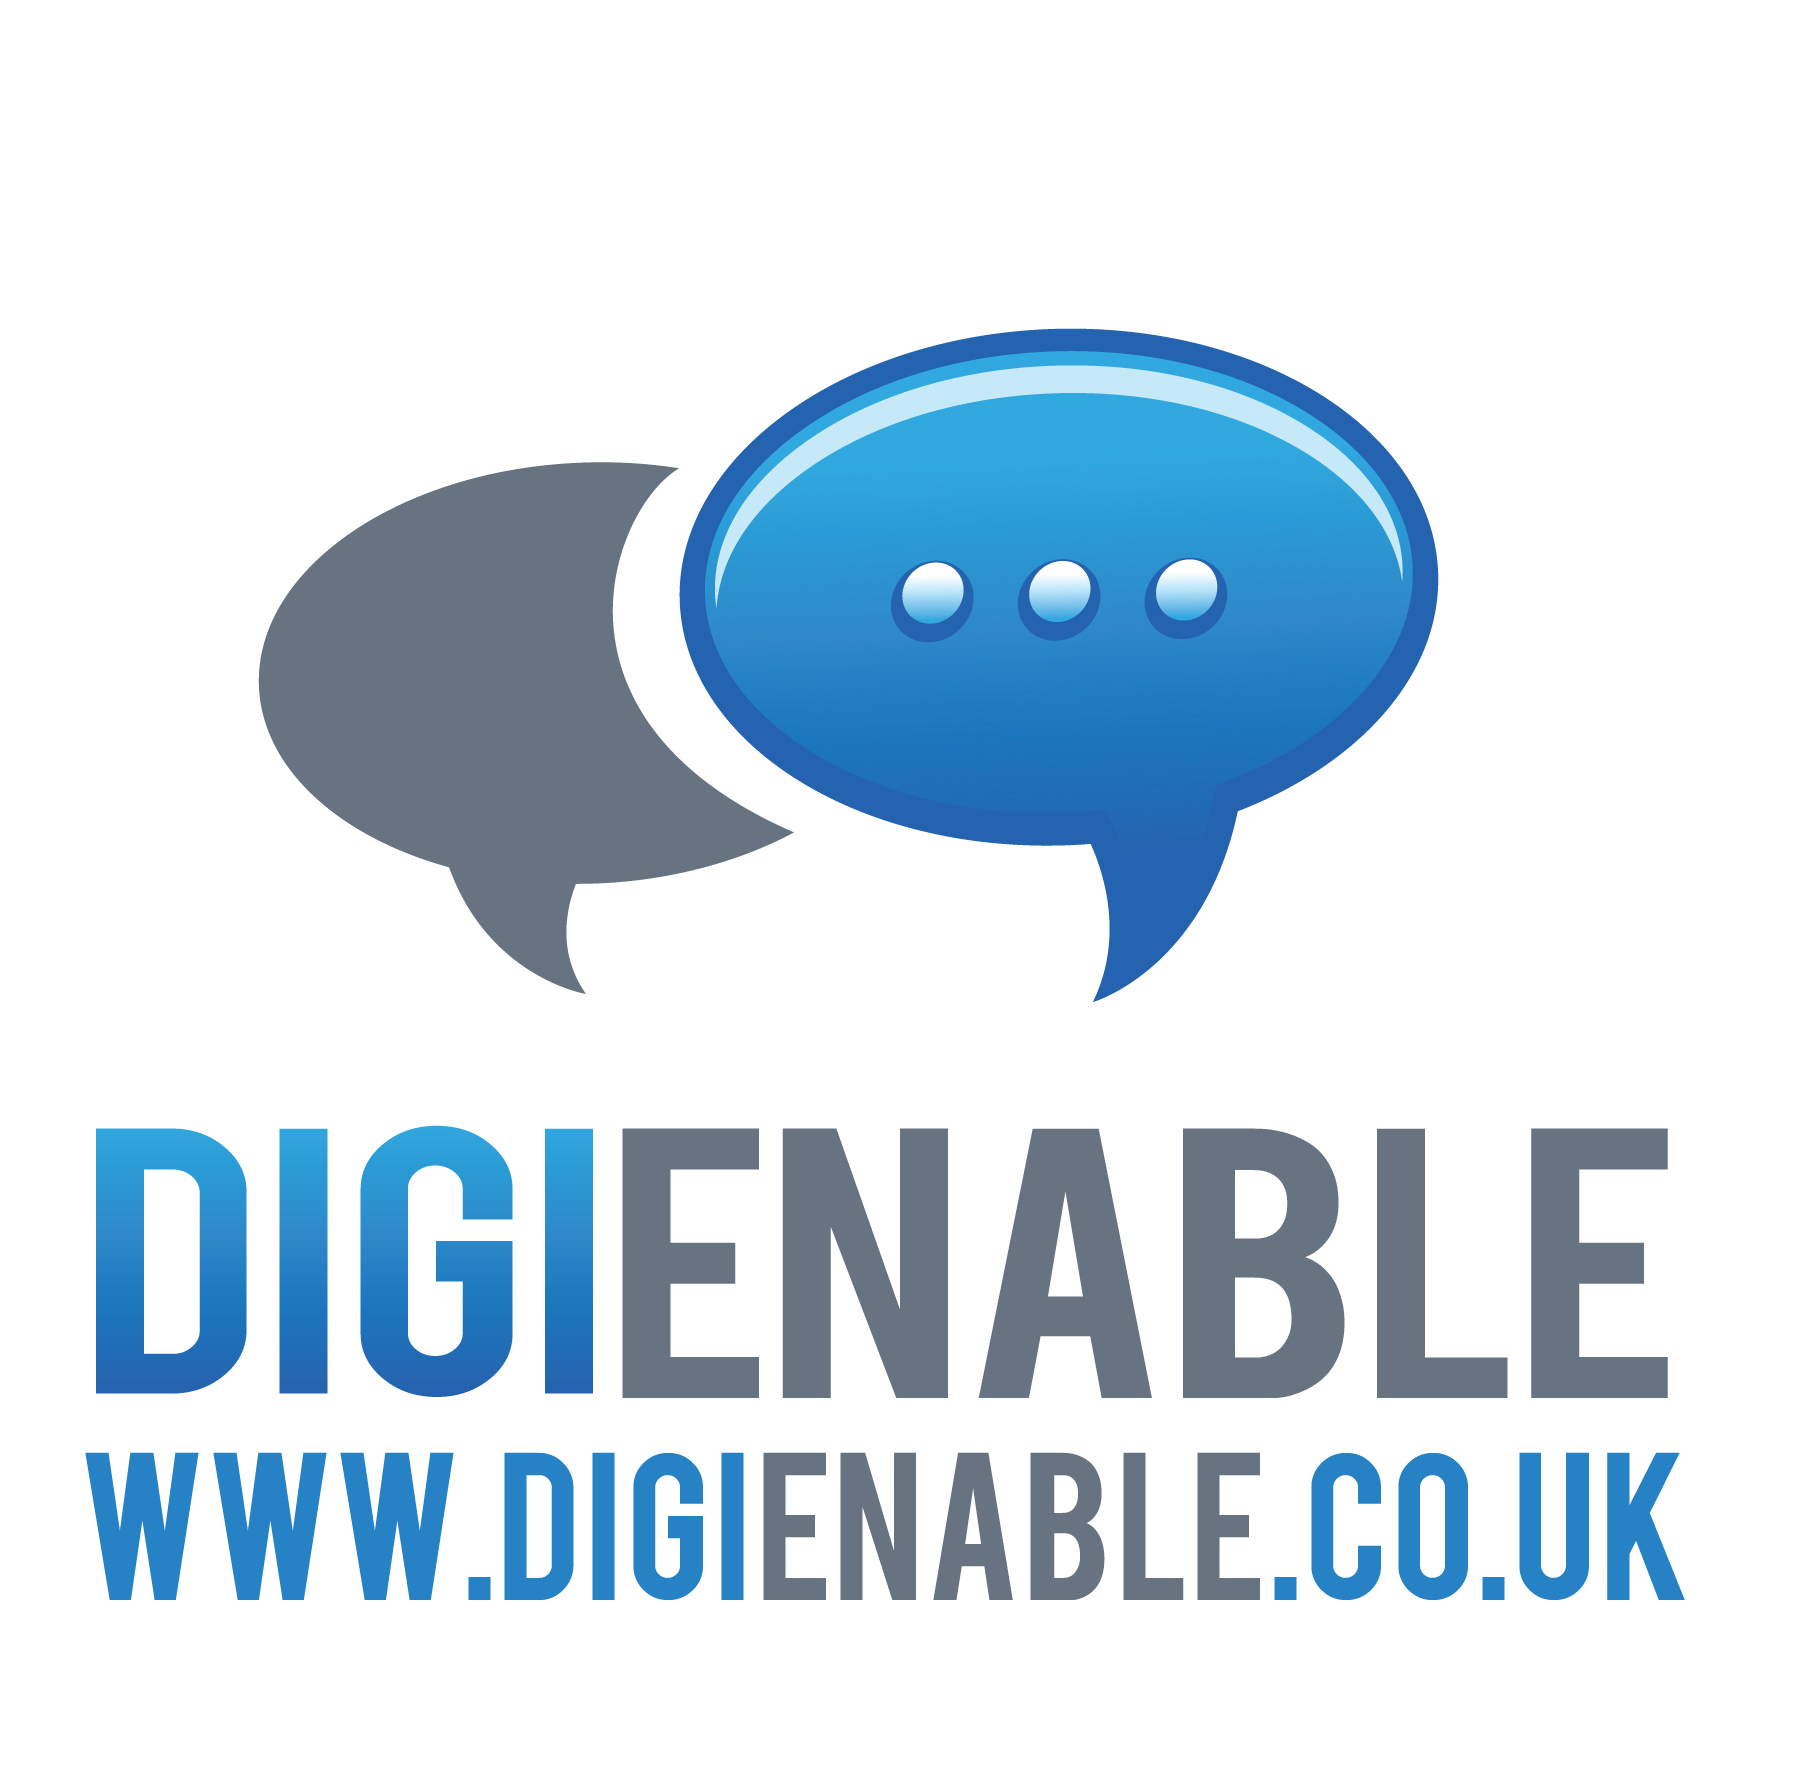 DigiEnable